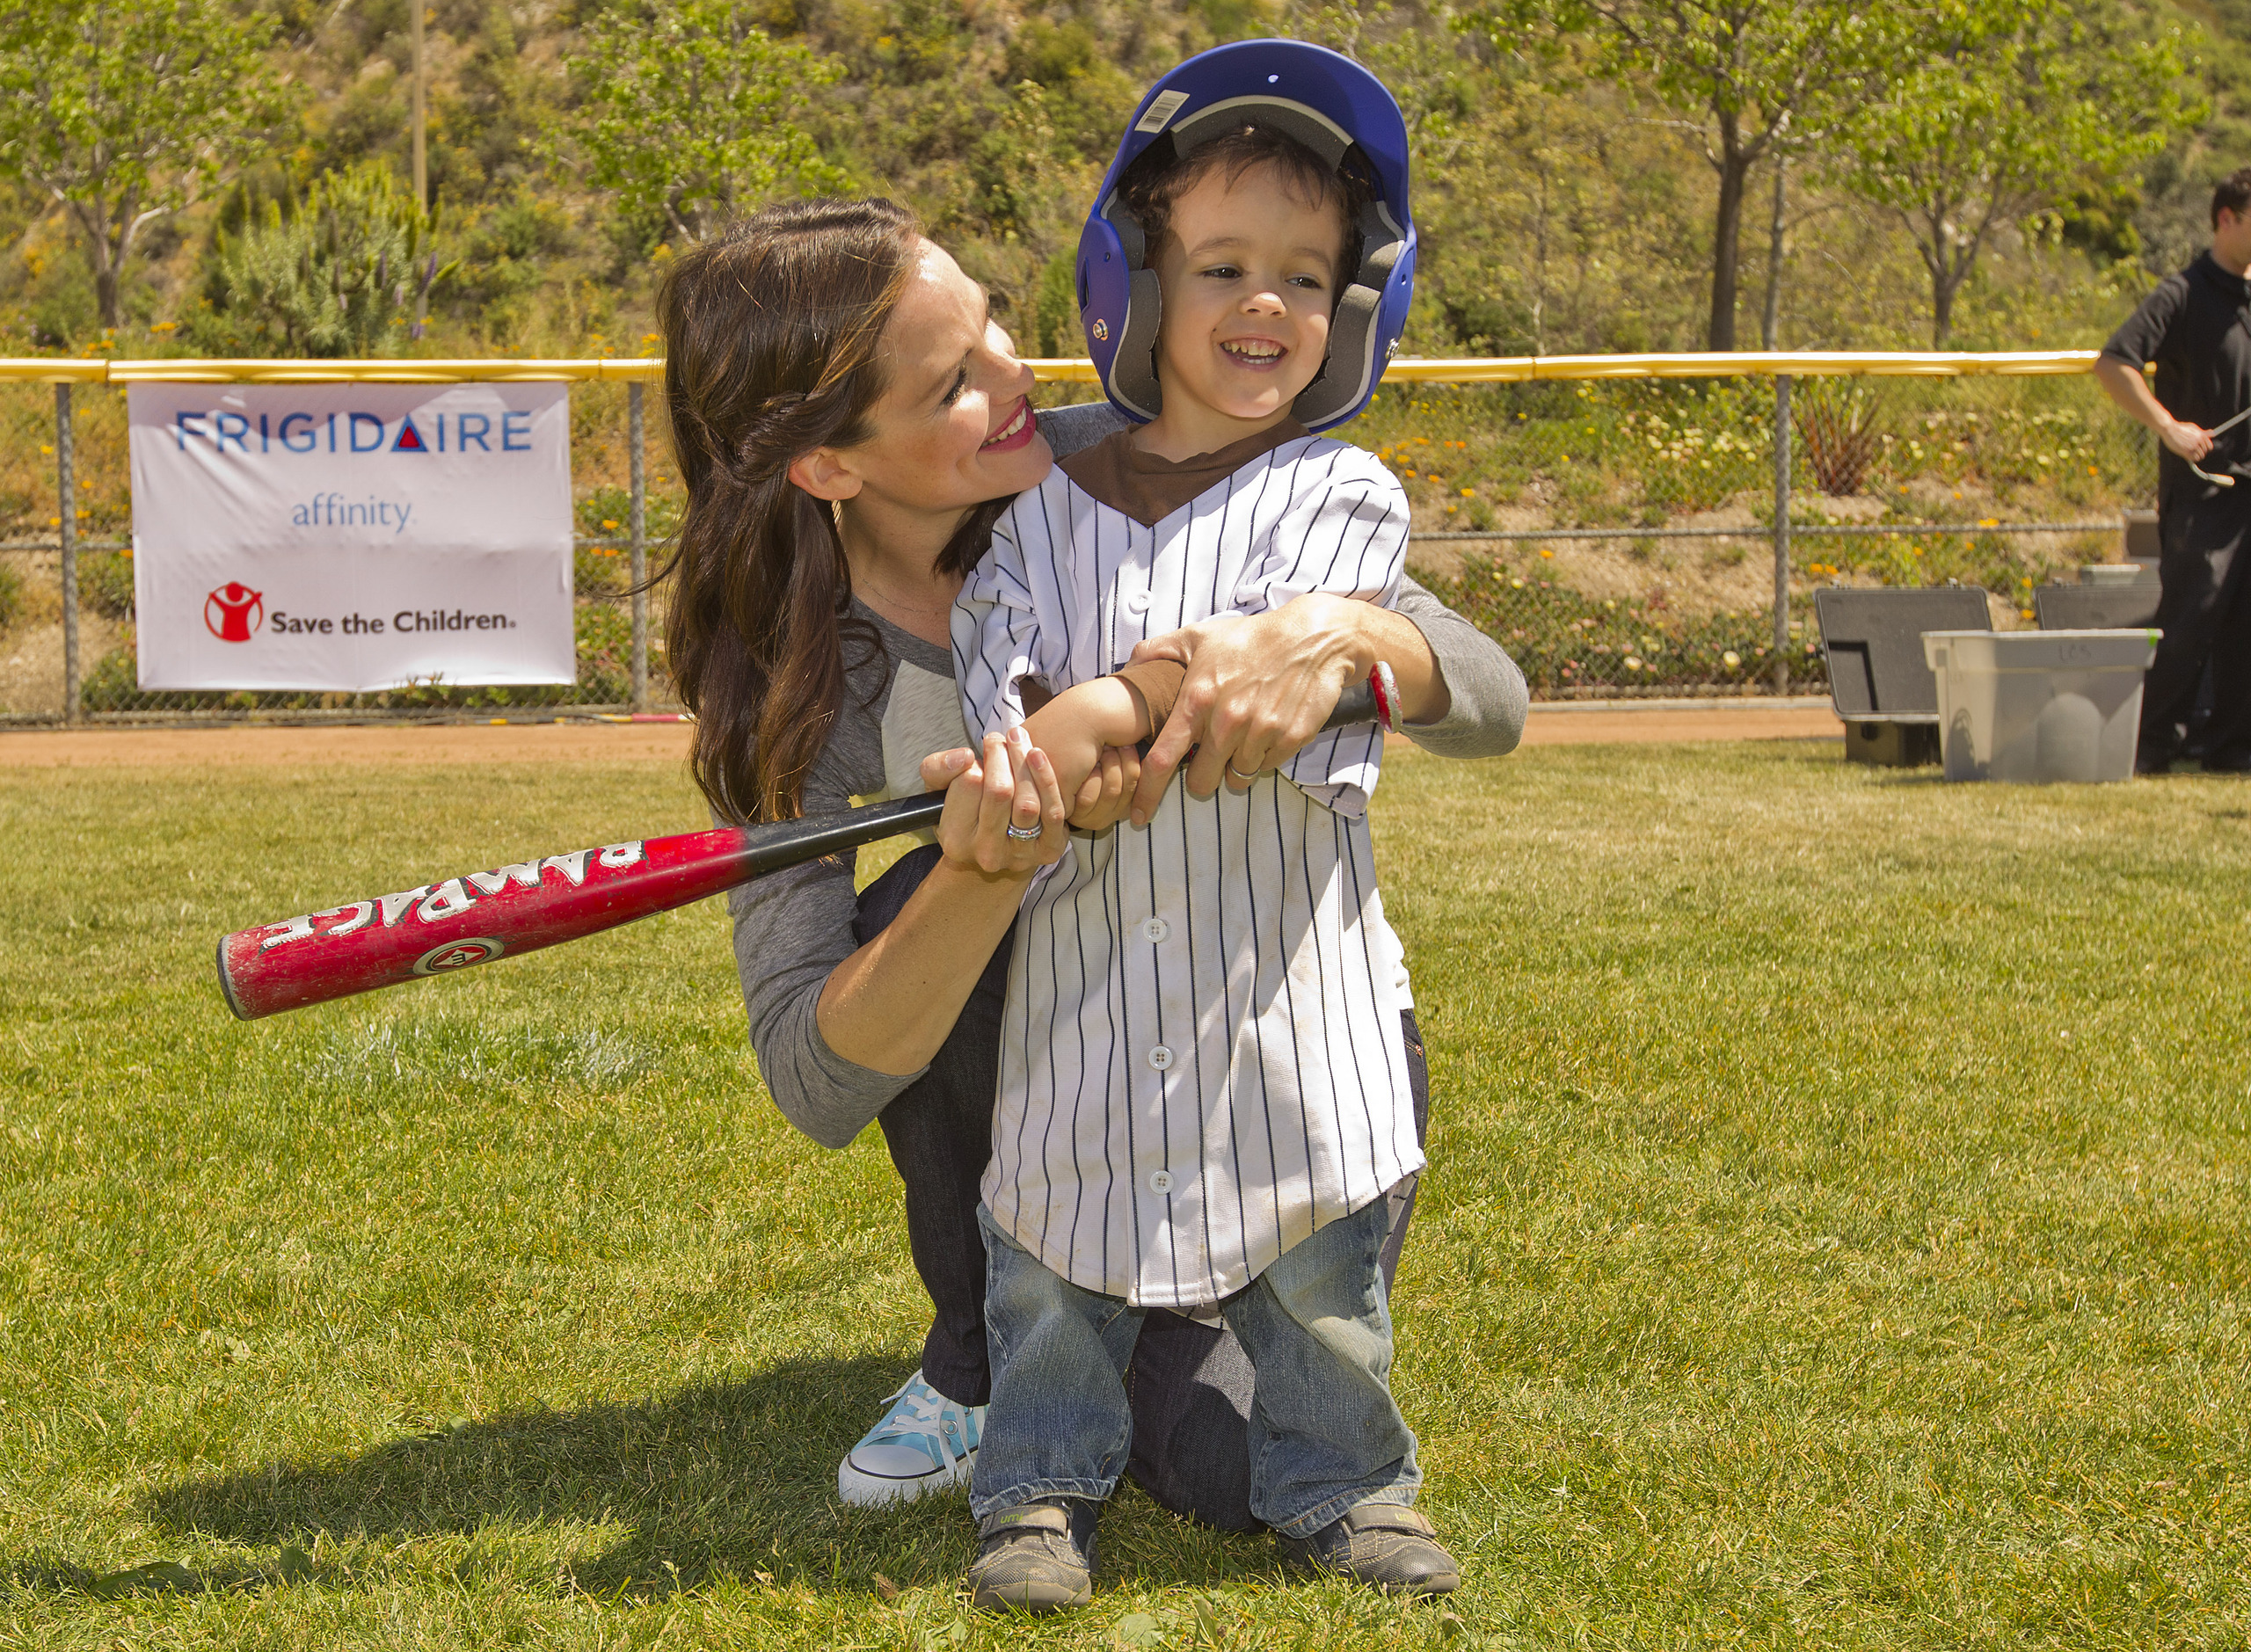 Jennifer Garner And Frigidaire Go To Bat For Save The Children